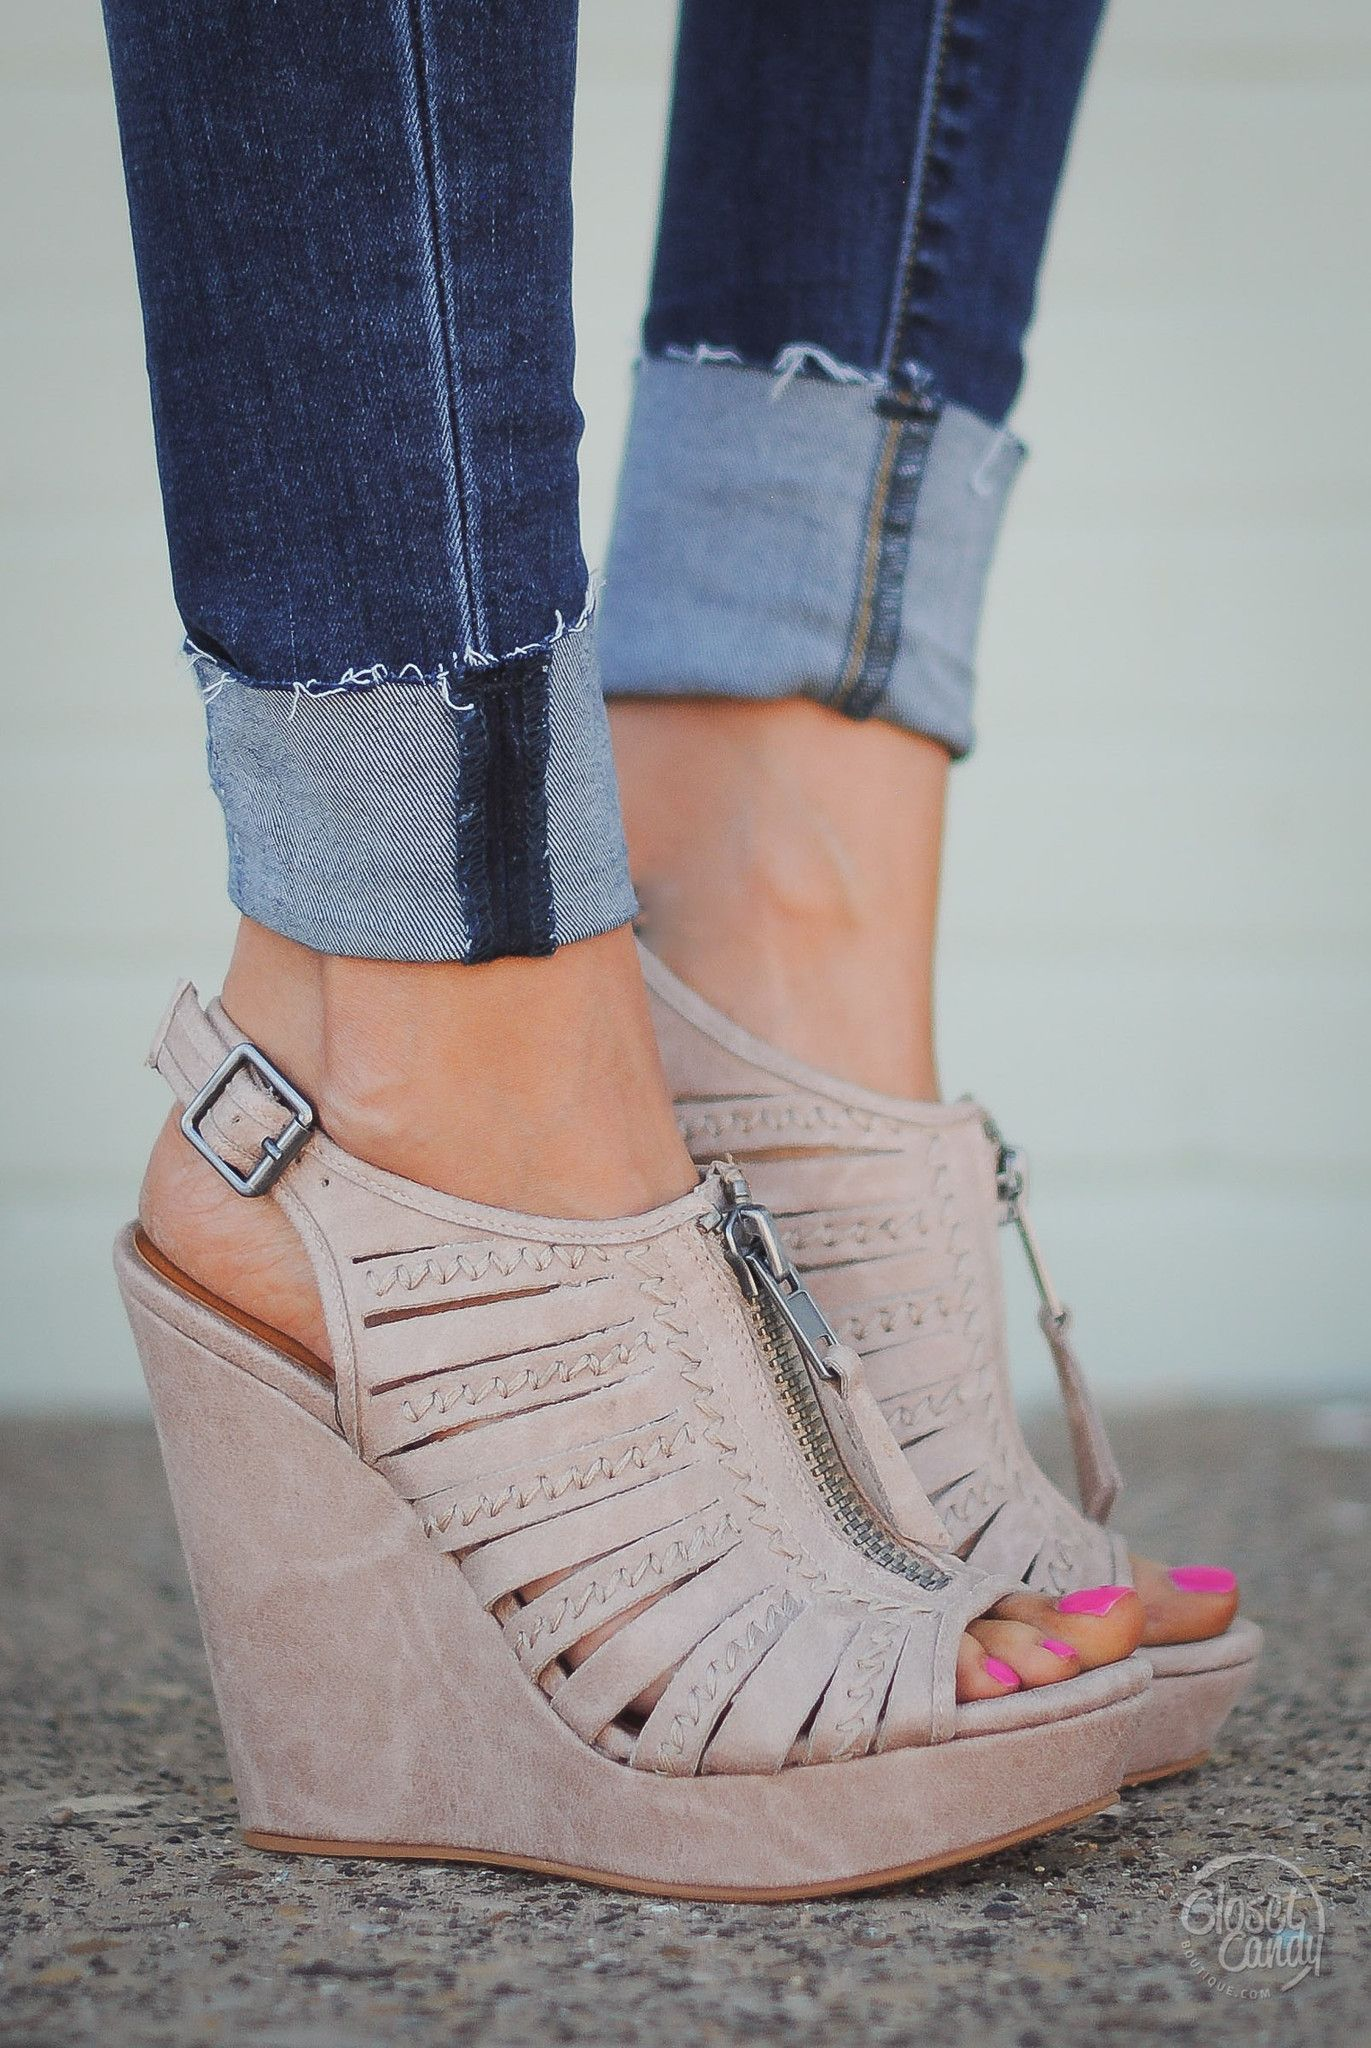 a5c6c407b These neutral wedge sandals are the perfect addition to dress up your  outfit! Vegan suede